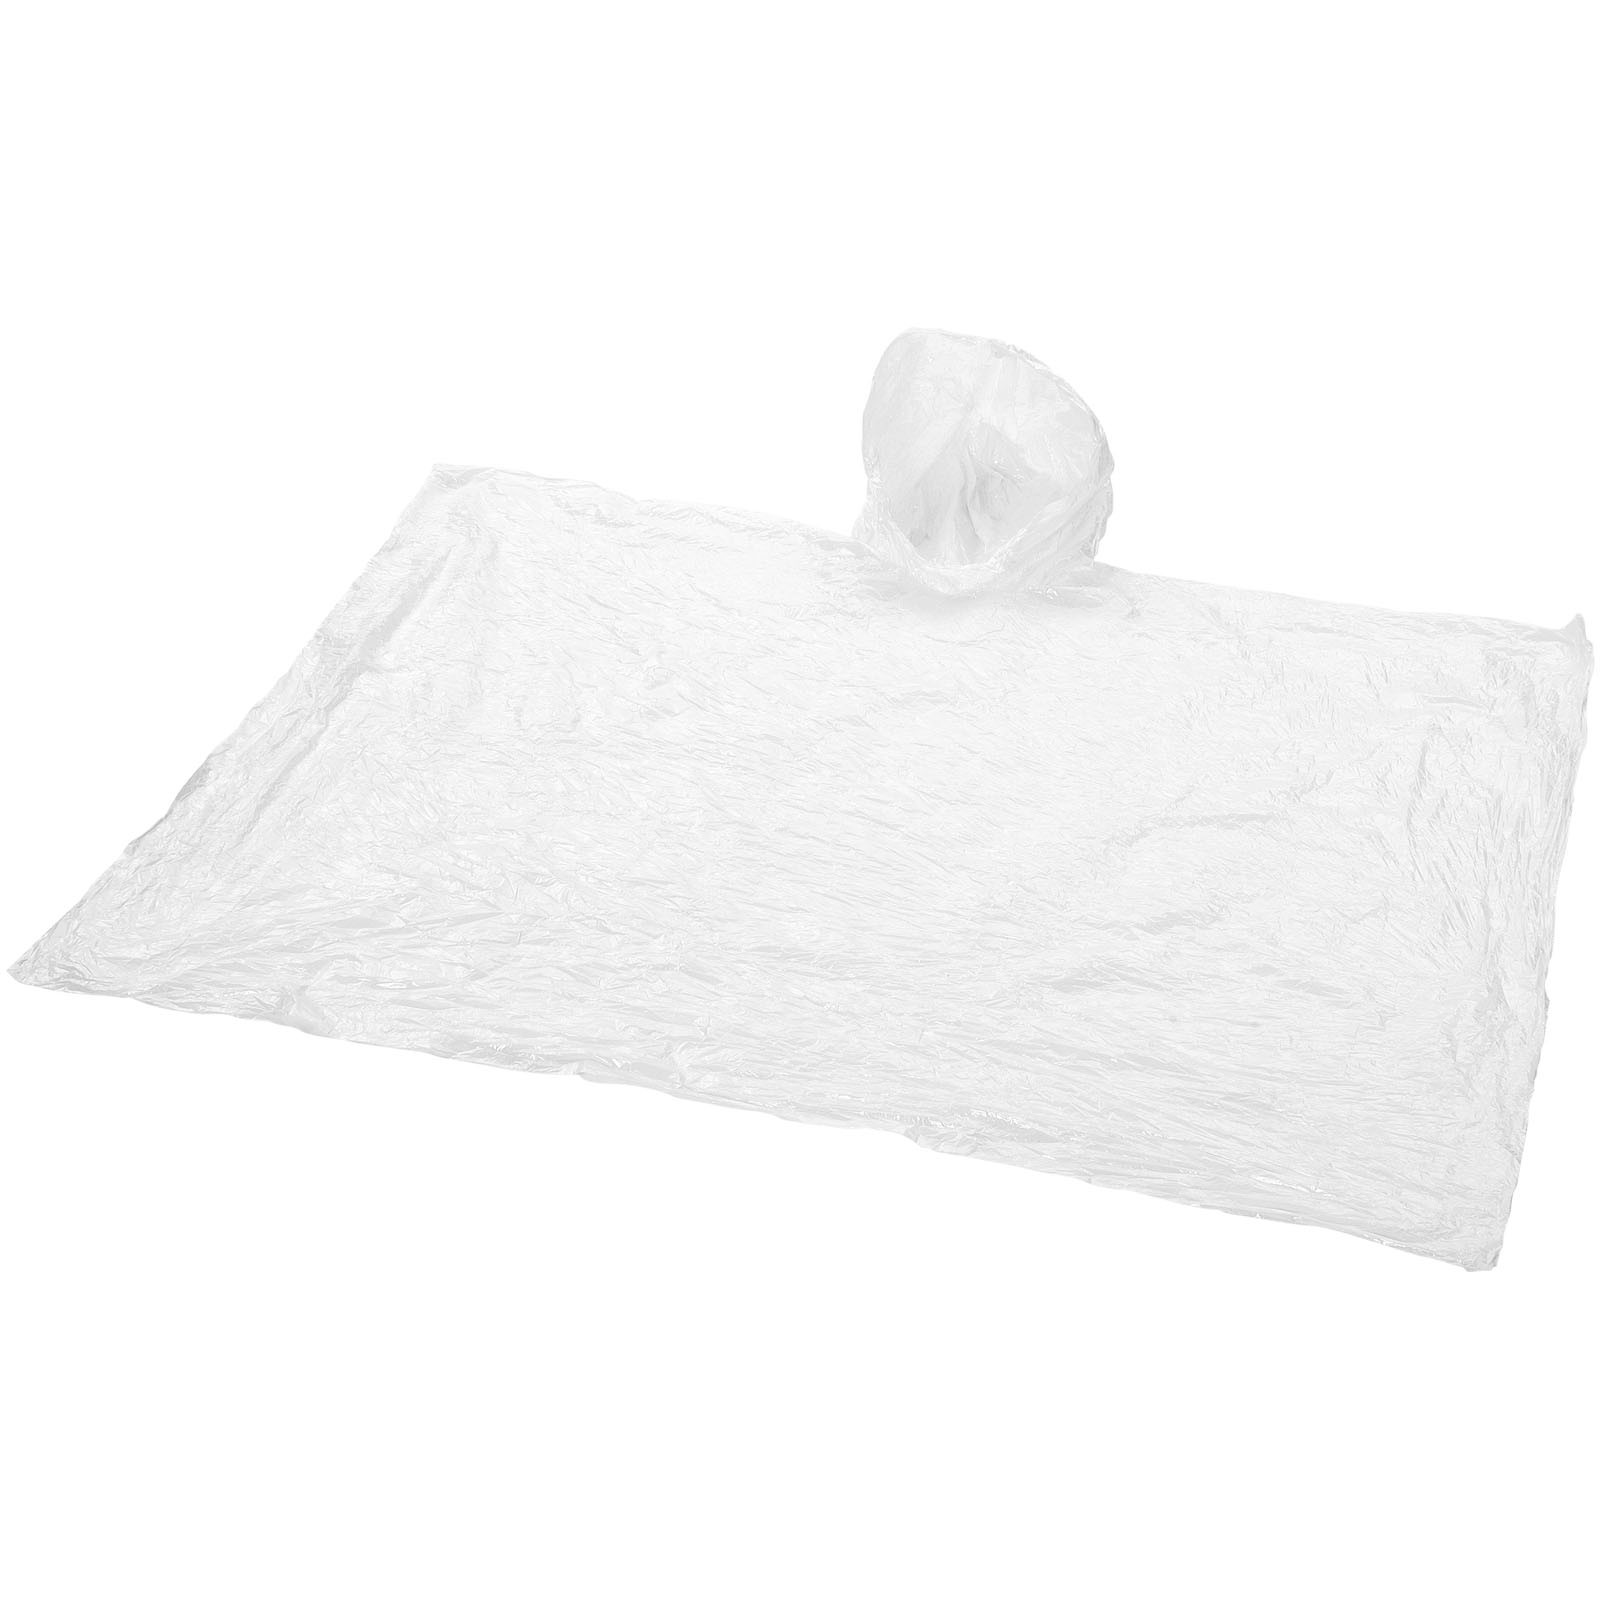 Huko disposable rain poncho with storage pouch - Transparent White